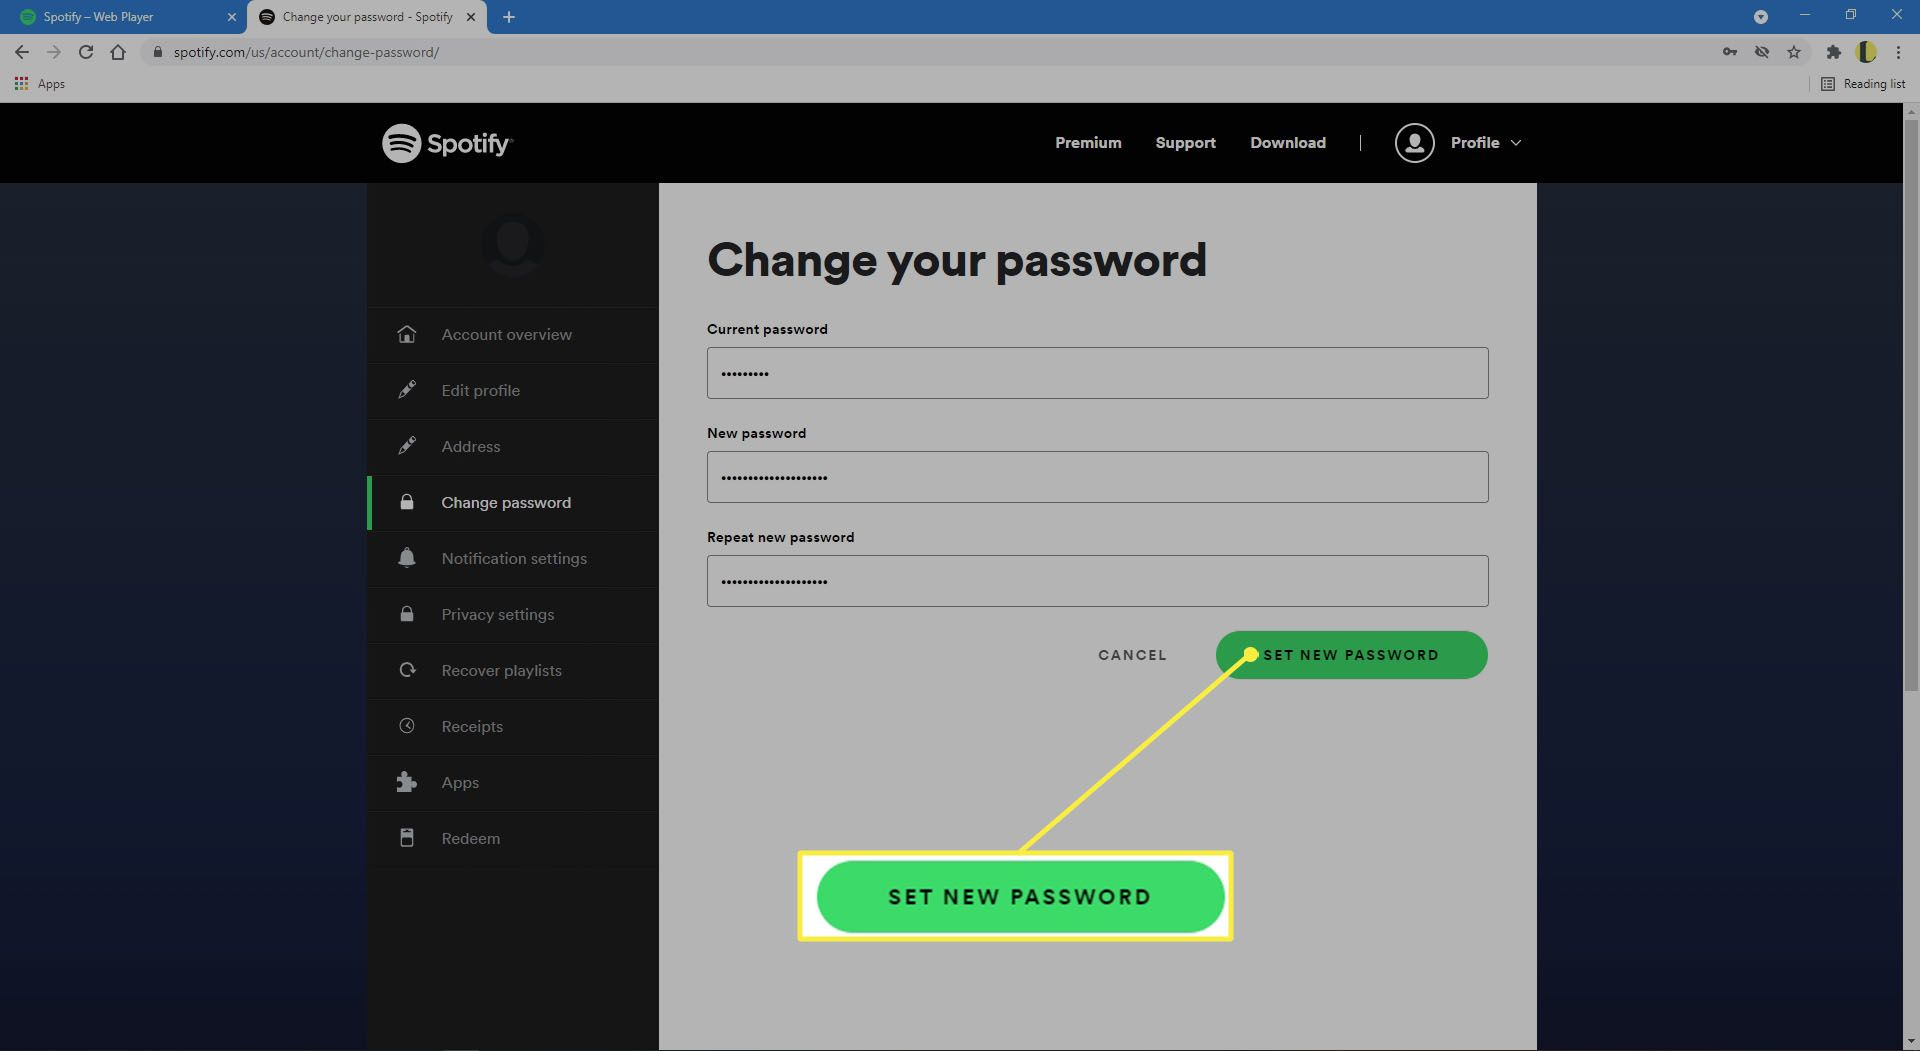 Setting new password on the Spotify website.